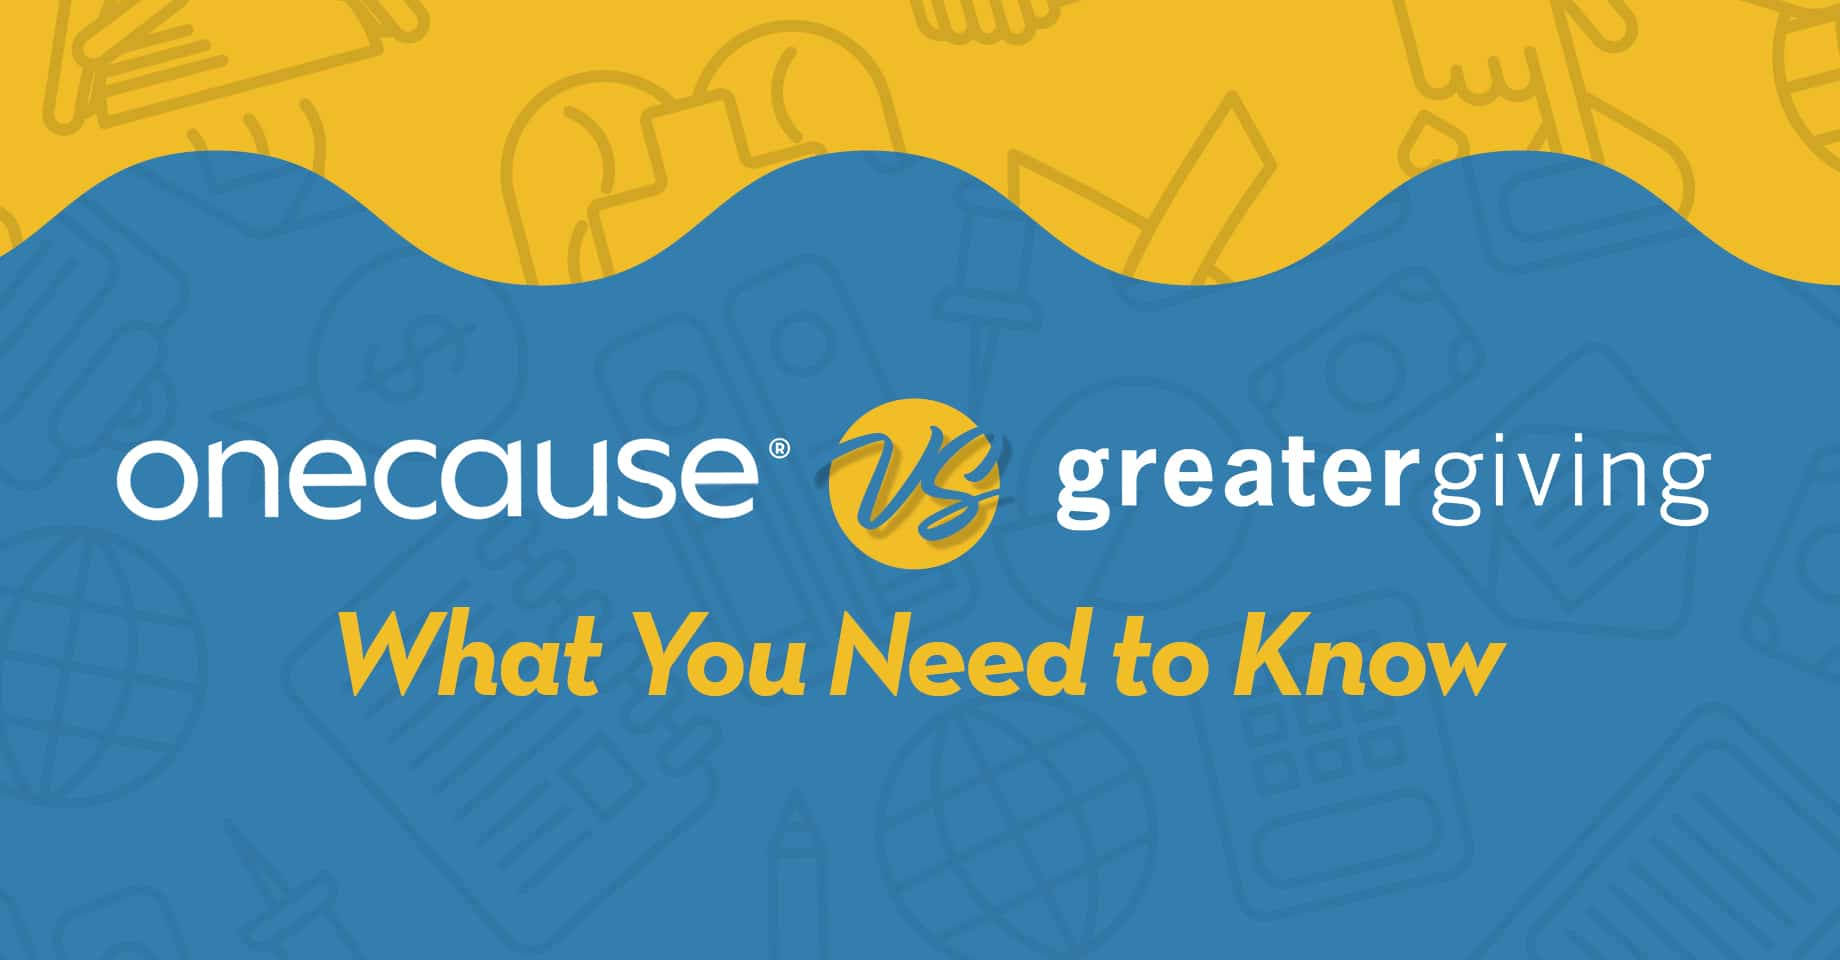 OneCause vs. Greatergiving What You Need to Know